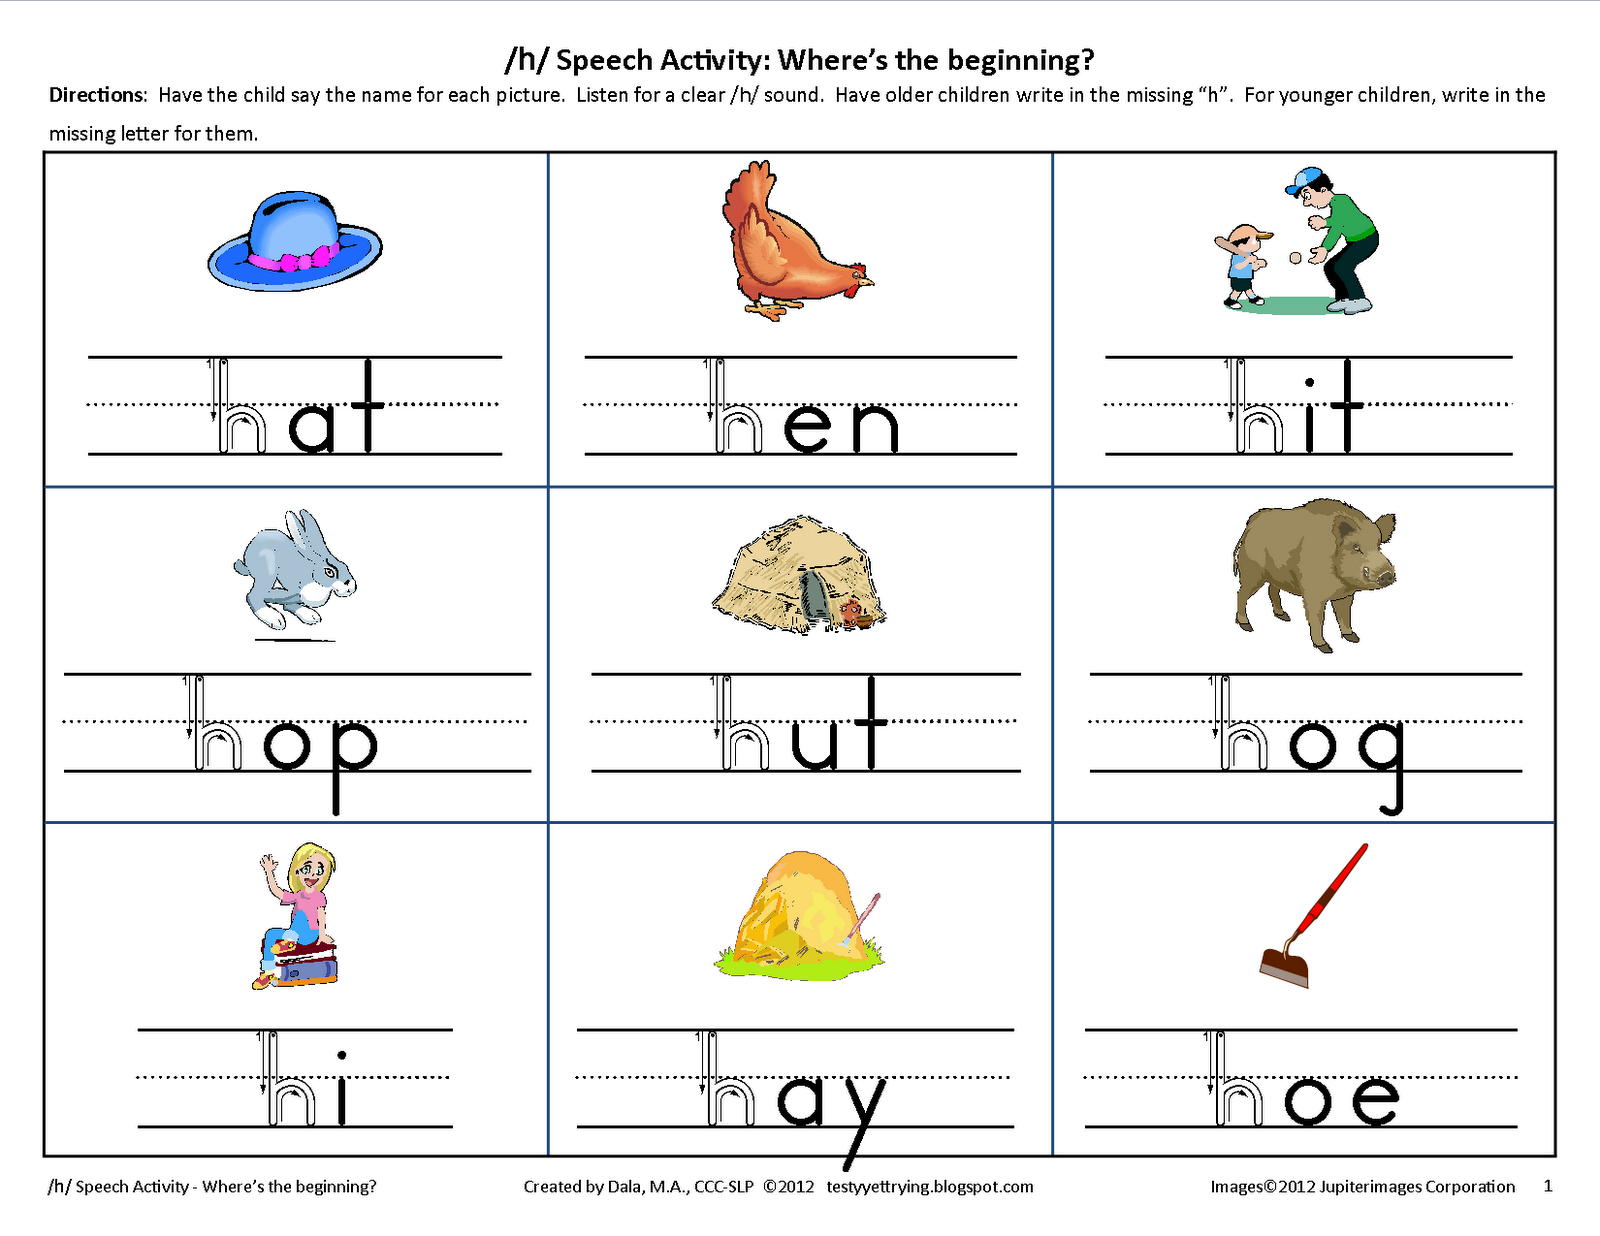 Weirdmailus  Nice Testy Yet Trying Initial H Speech Worksheet With Marvelous Make Classroom Teachers Happy Reinforce Phonics And Handwriting And Practice Speech All At The Same Time With Endearing Percentage Worksheets Ks Also Free Printable Chemistry Worksheets In Addition Measurements Worksheets For Grade  And Numbers  To  Worksheets As Well As Studyladder Worksheets Additionally Find The Area Worksheets From Testyyettryingblogspotcom With Weirdmailus  Marvelous Testy Yet Trying Initial H Speech Worksheet With Endearing Make Classroom Teachers Happy Reinforce Phonics And Handwriting And Practice Speech All At The Same Time And Nice Percentage Worksheets Ks Also Free Printable Chemistry Worksheets In Addition Measurements Worksheets For Grade  From Testyyettryingblogspotcom